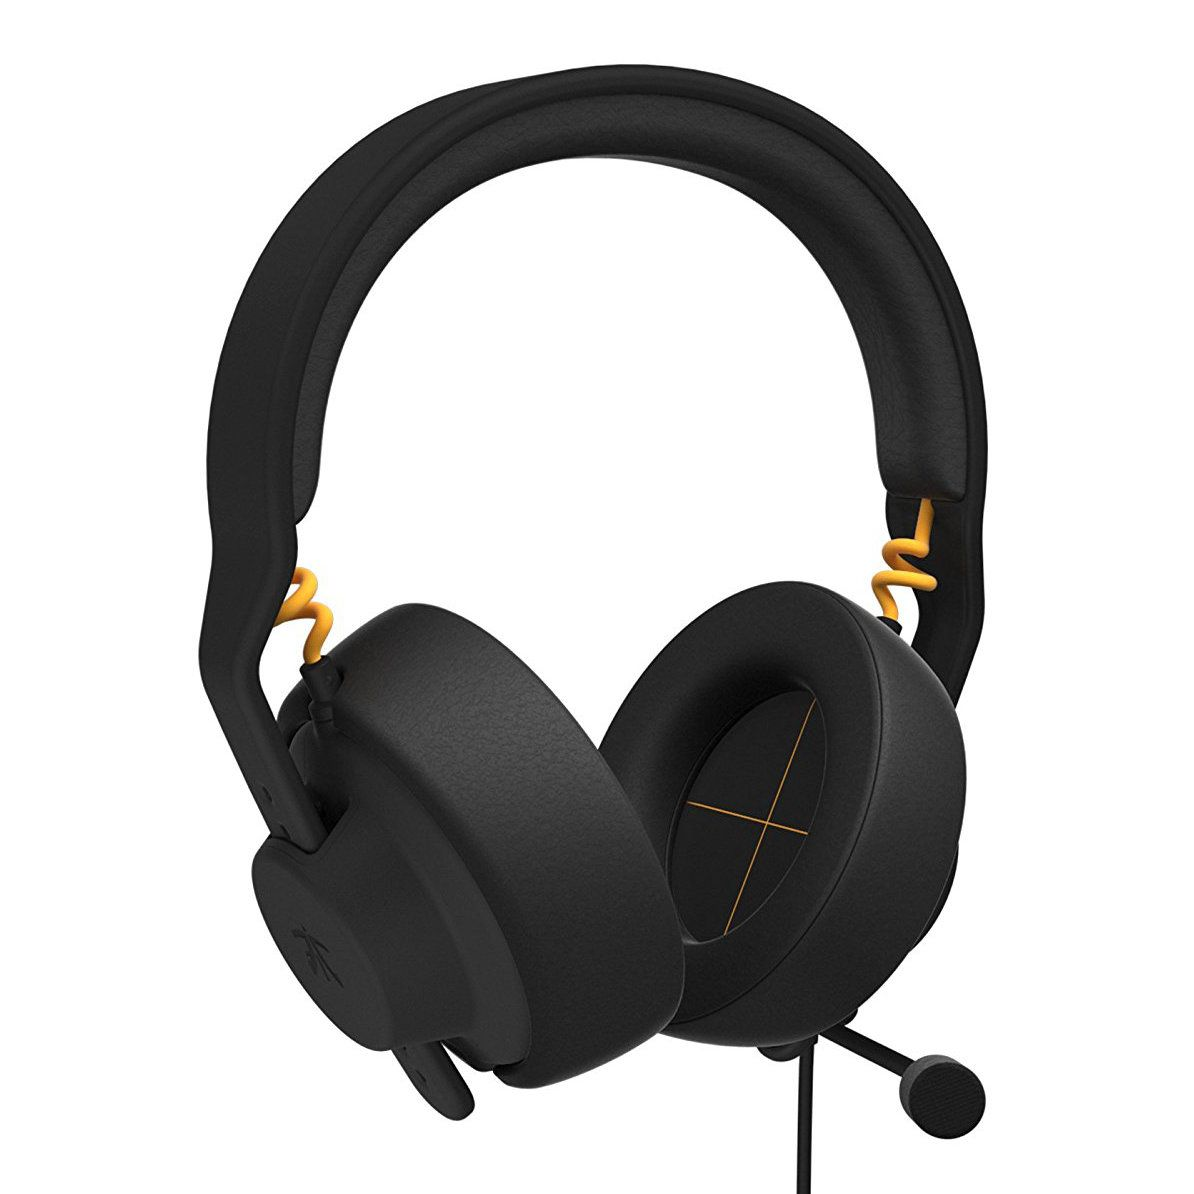 Best Gaming Headset 2017:  Fnatic Gear Duel Modular Pro gaming headset